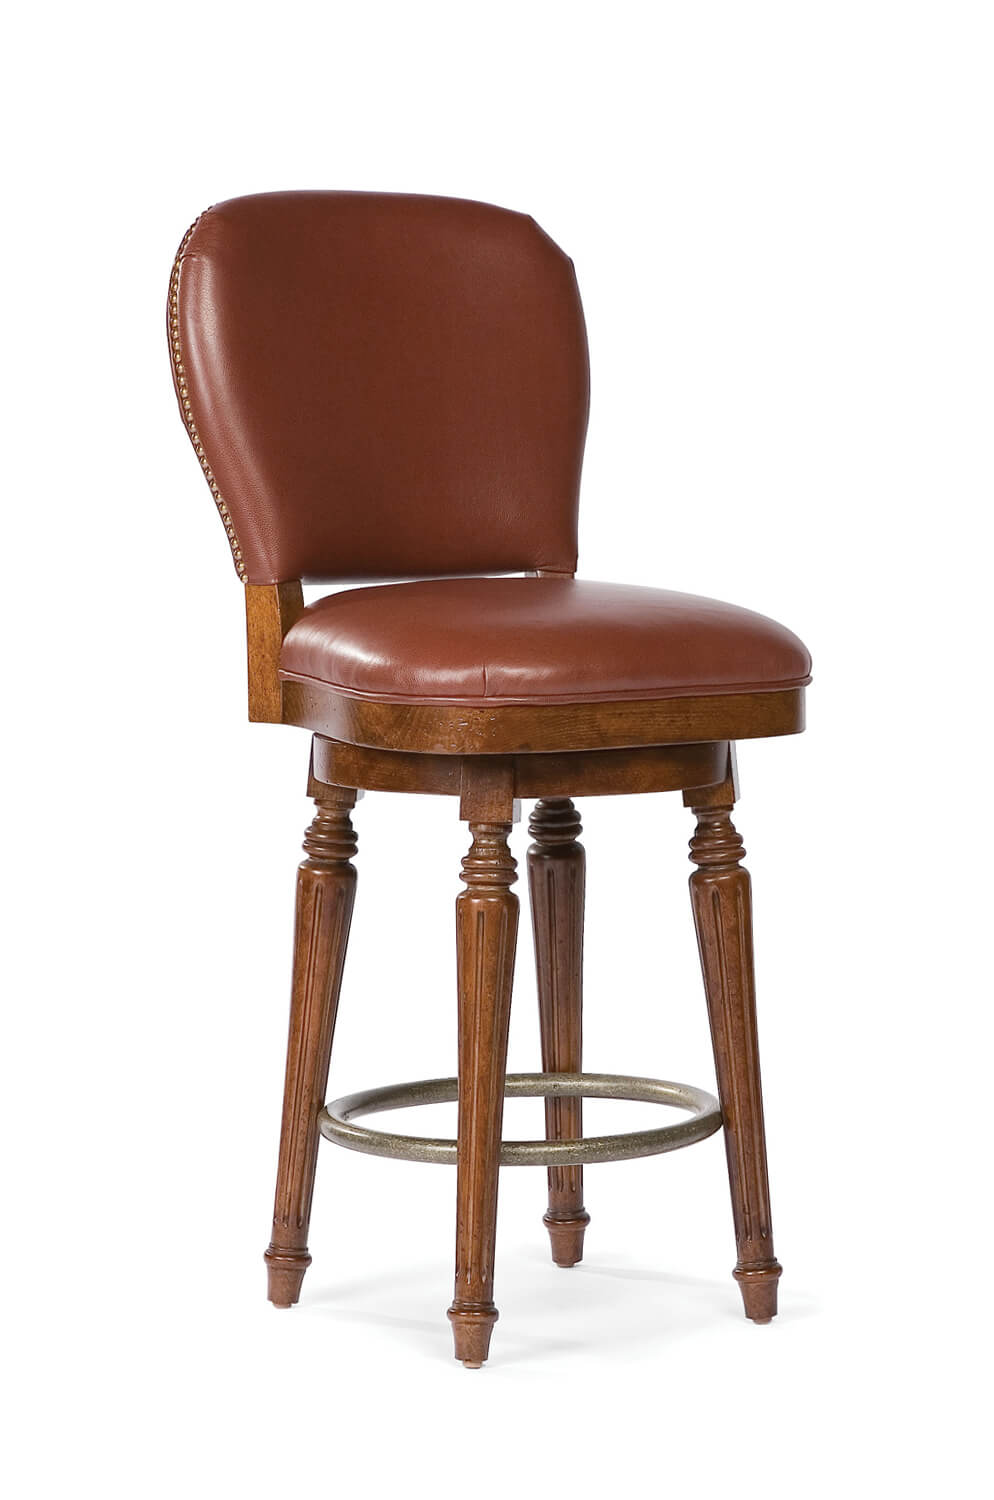 Buy Quincy Comfortable Upholstered Wood Swivel Bar Stool